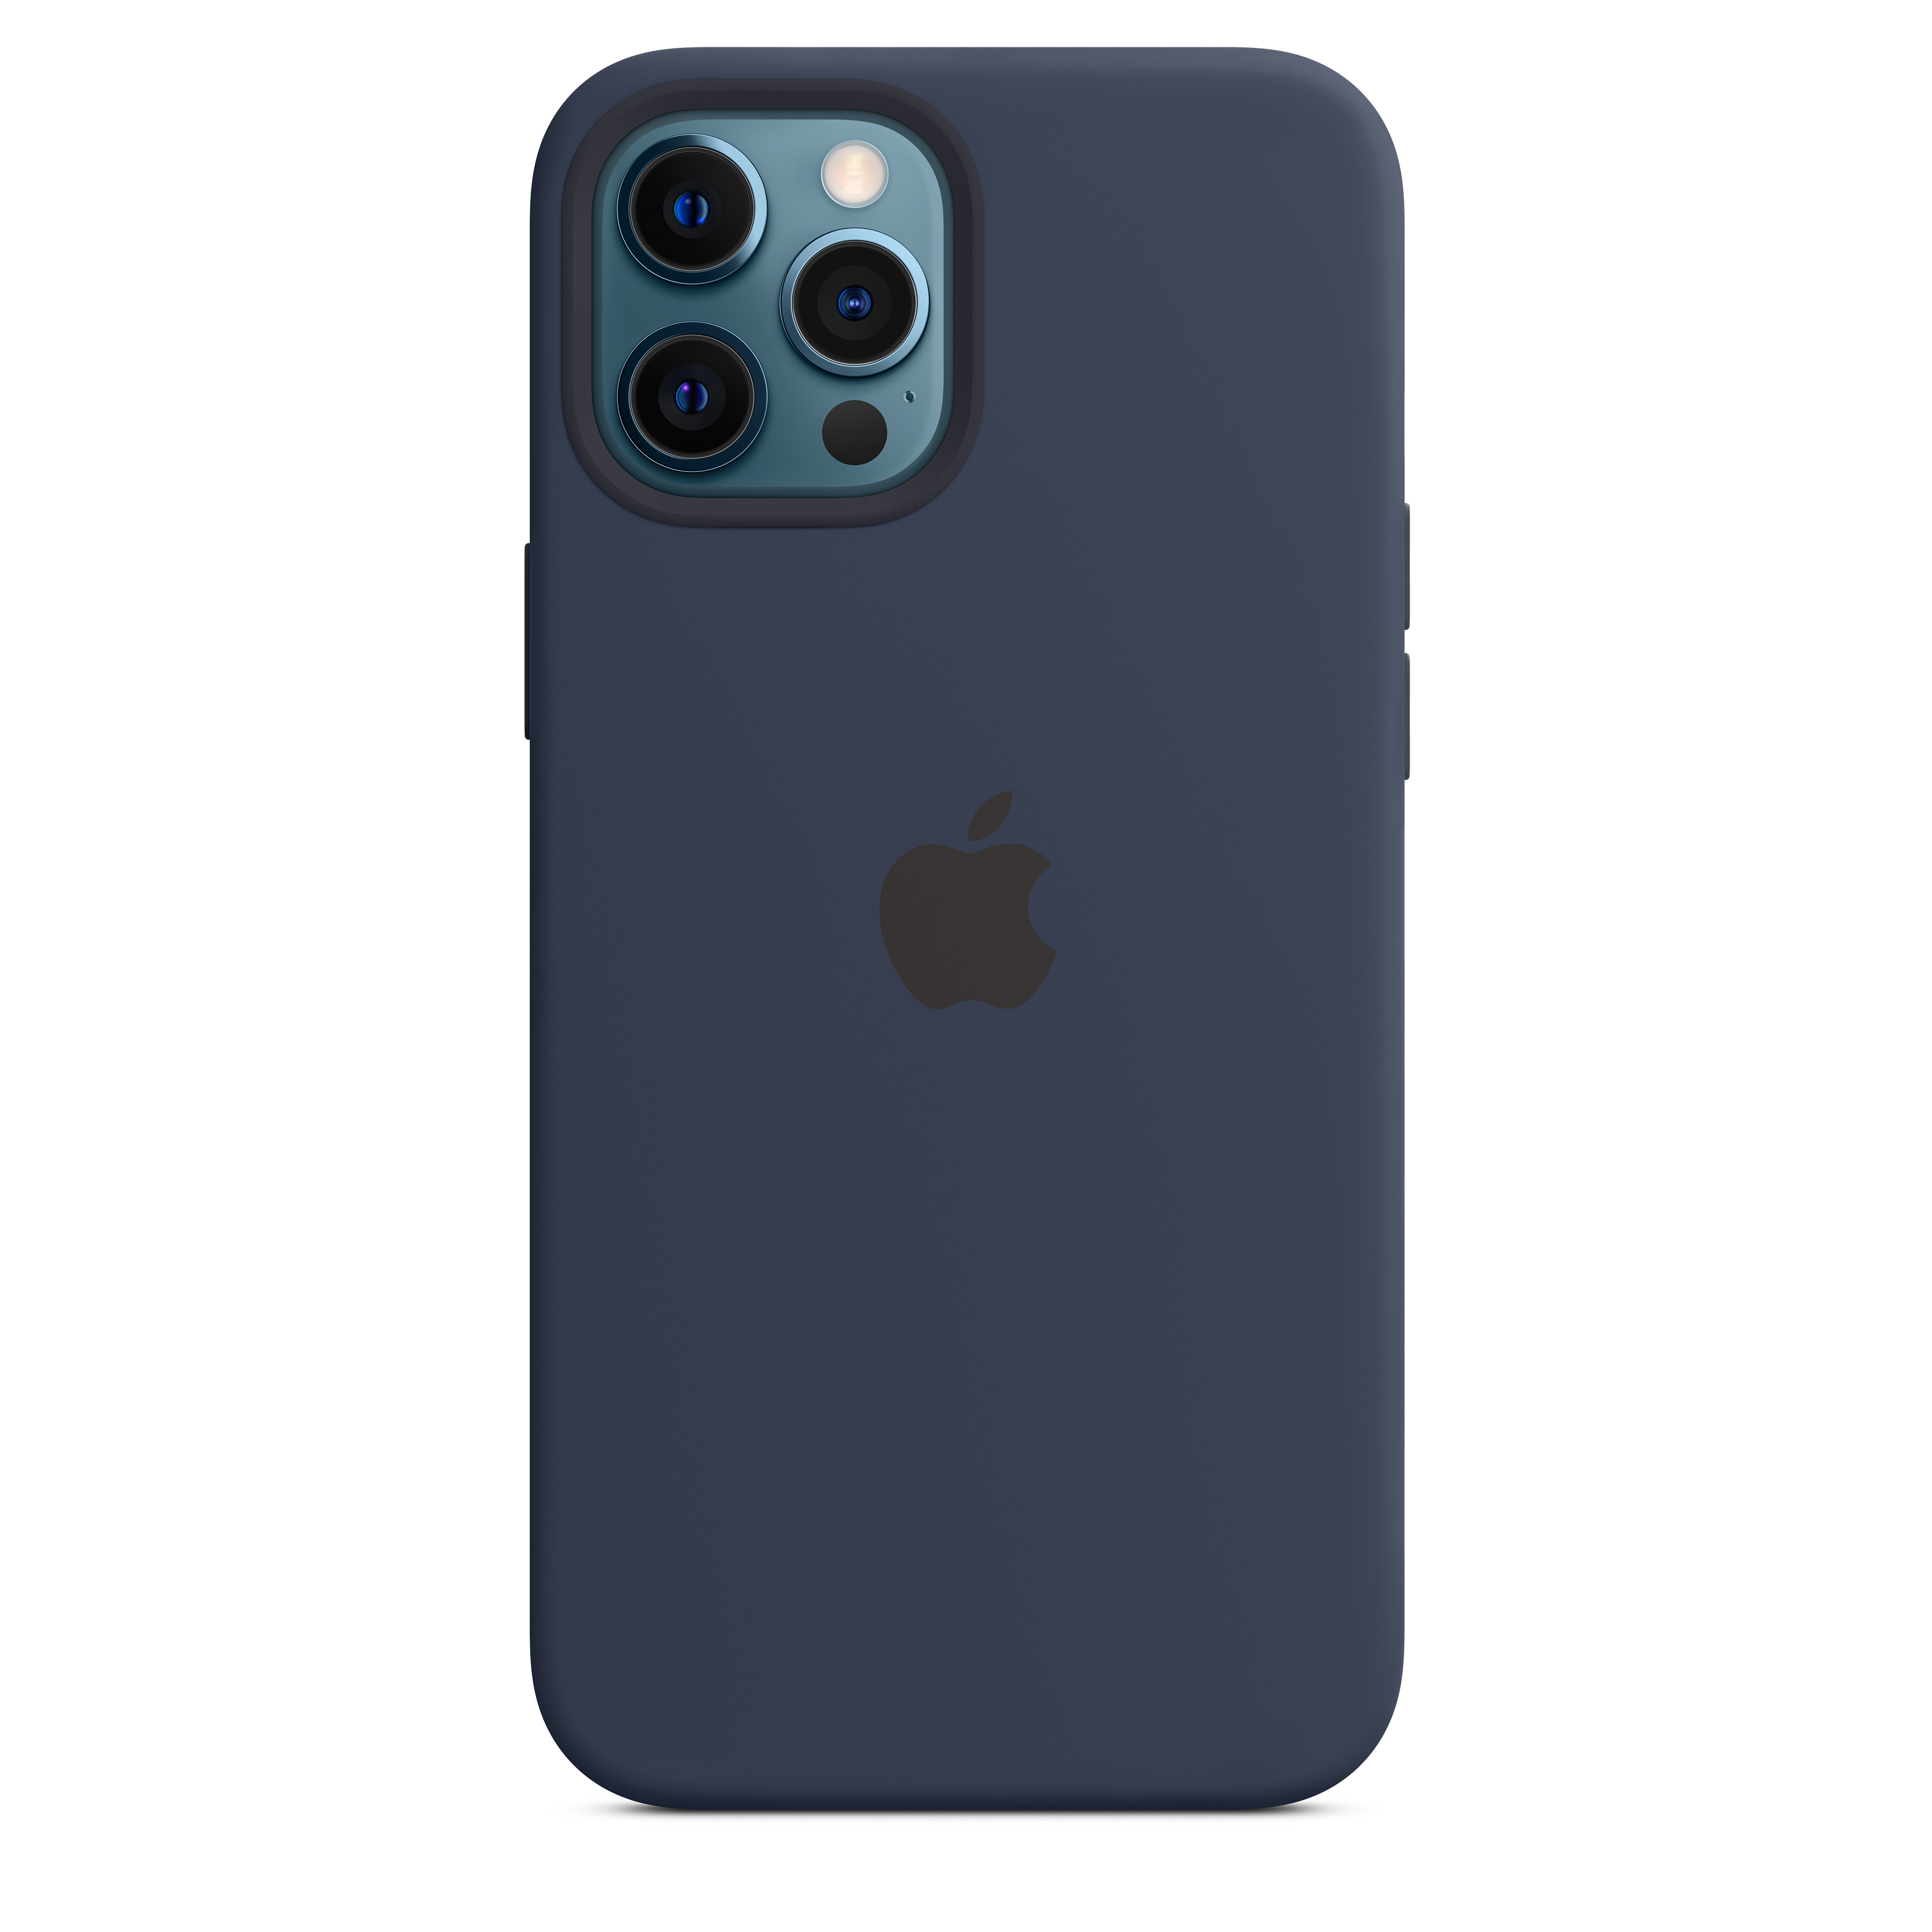 Apple - iPhone 12 Pro Max Silicone Case with MagSafe - Deep Navy Mhld3zm/a